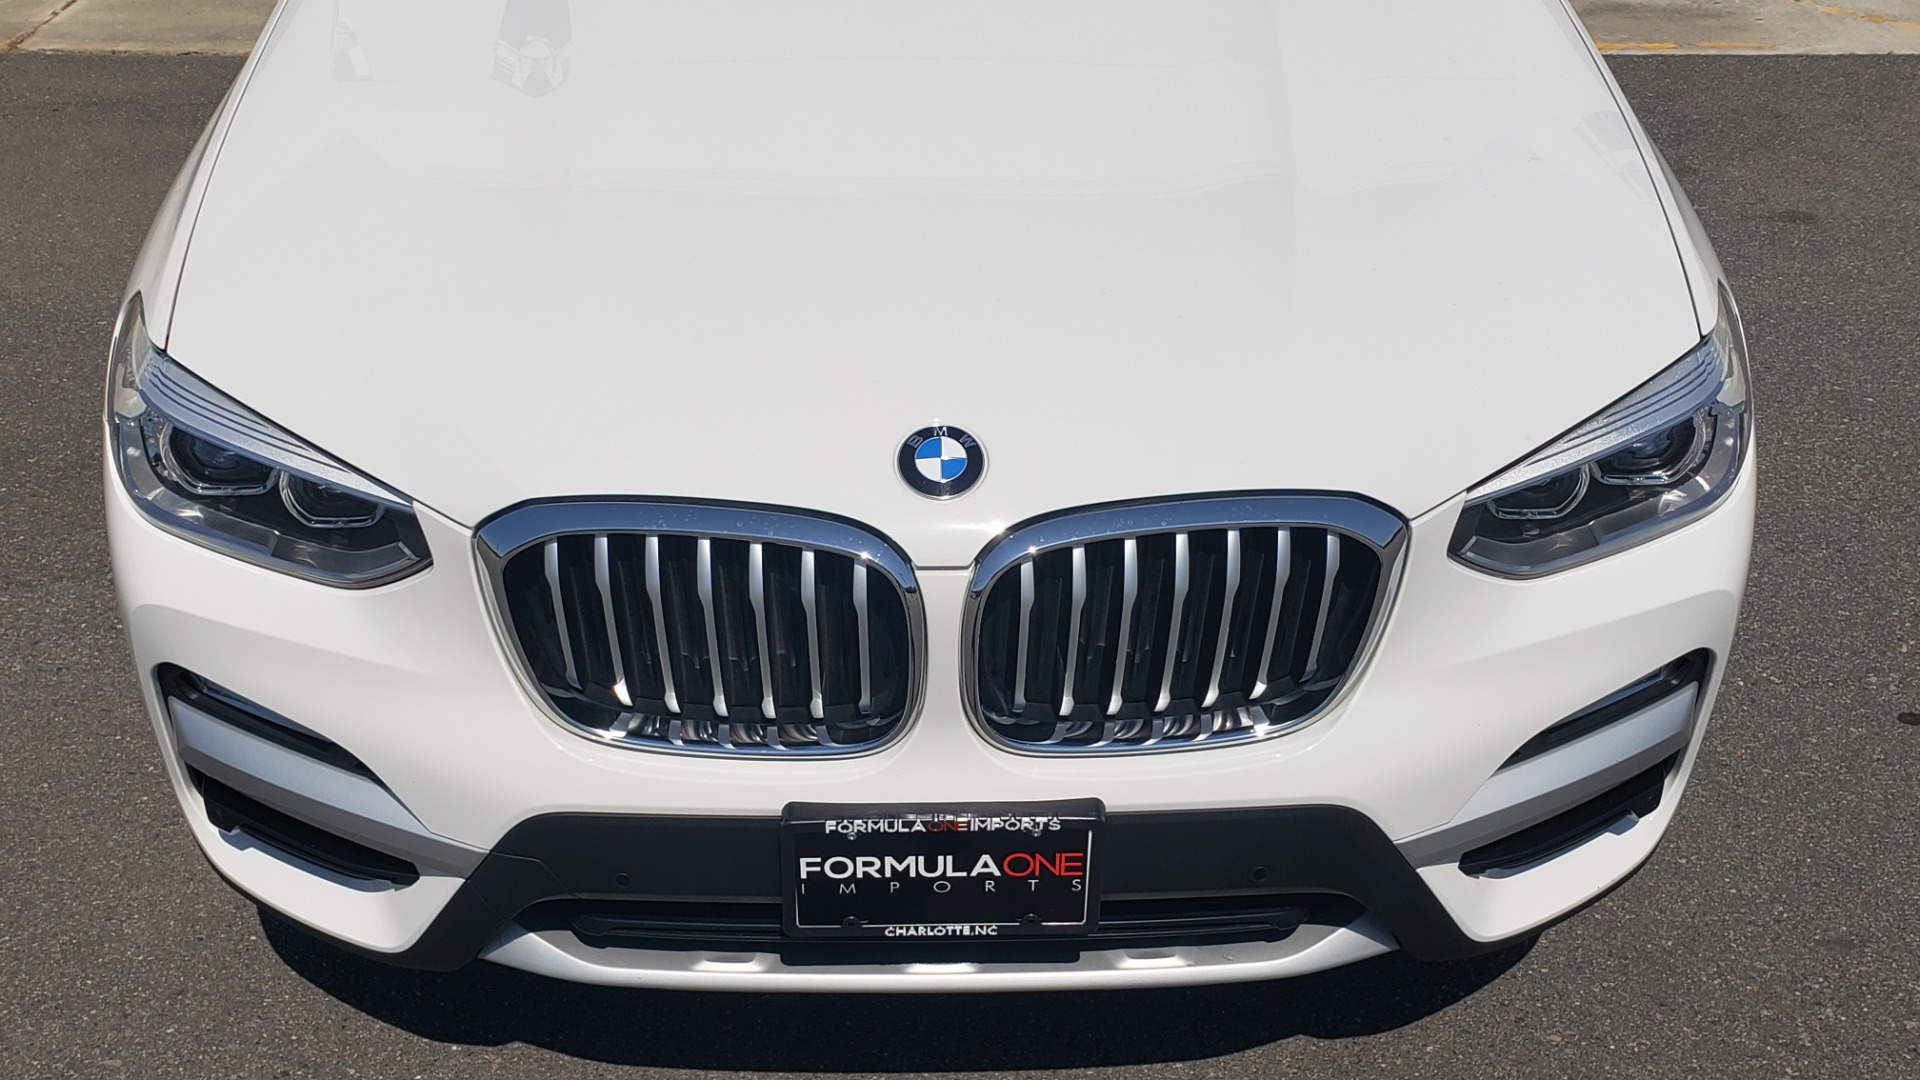 Used 2018 BMW X3 XDRIVE30I / CONV PKG / PANO-ROOF / HTD STS / REARVIEW for sale $33,995 at Formula Imports in Charlotte NC 28227 25